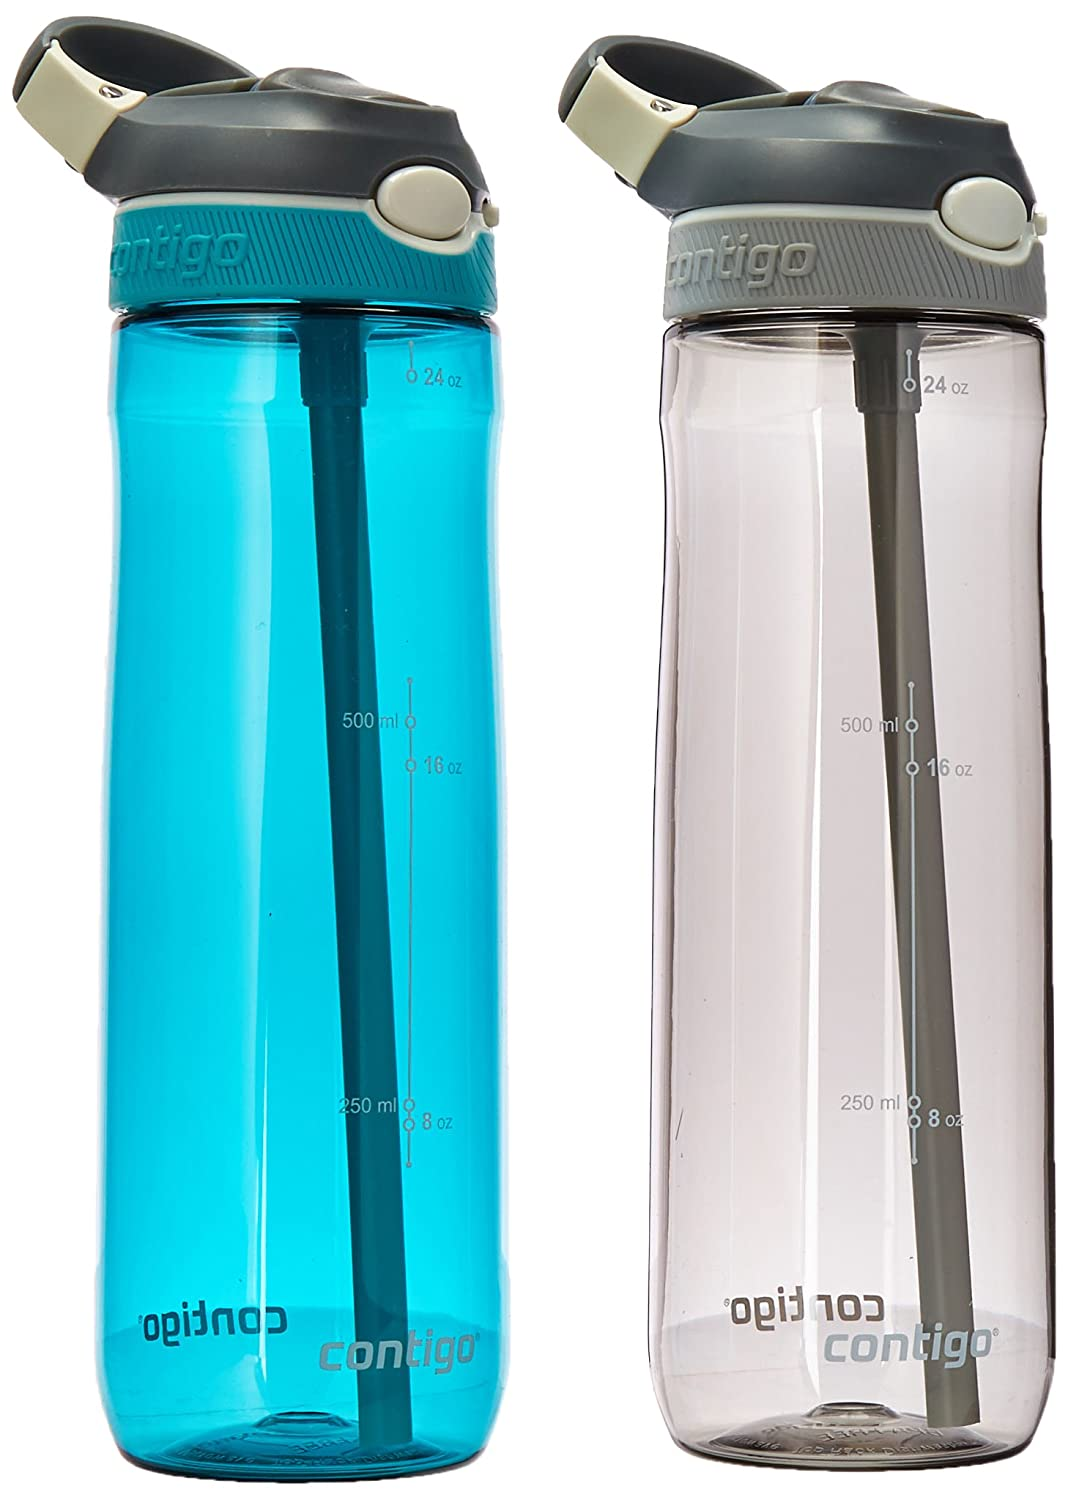 The Contigo Water Bottle travel product recommended by Nicole Ratner on Lifney.